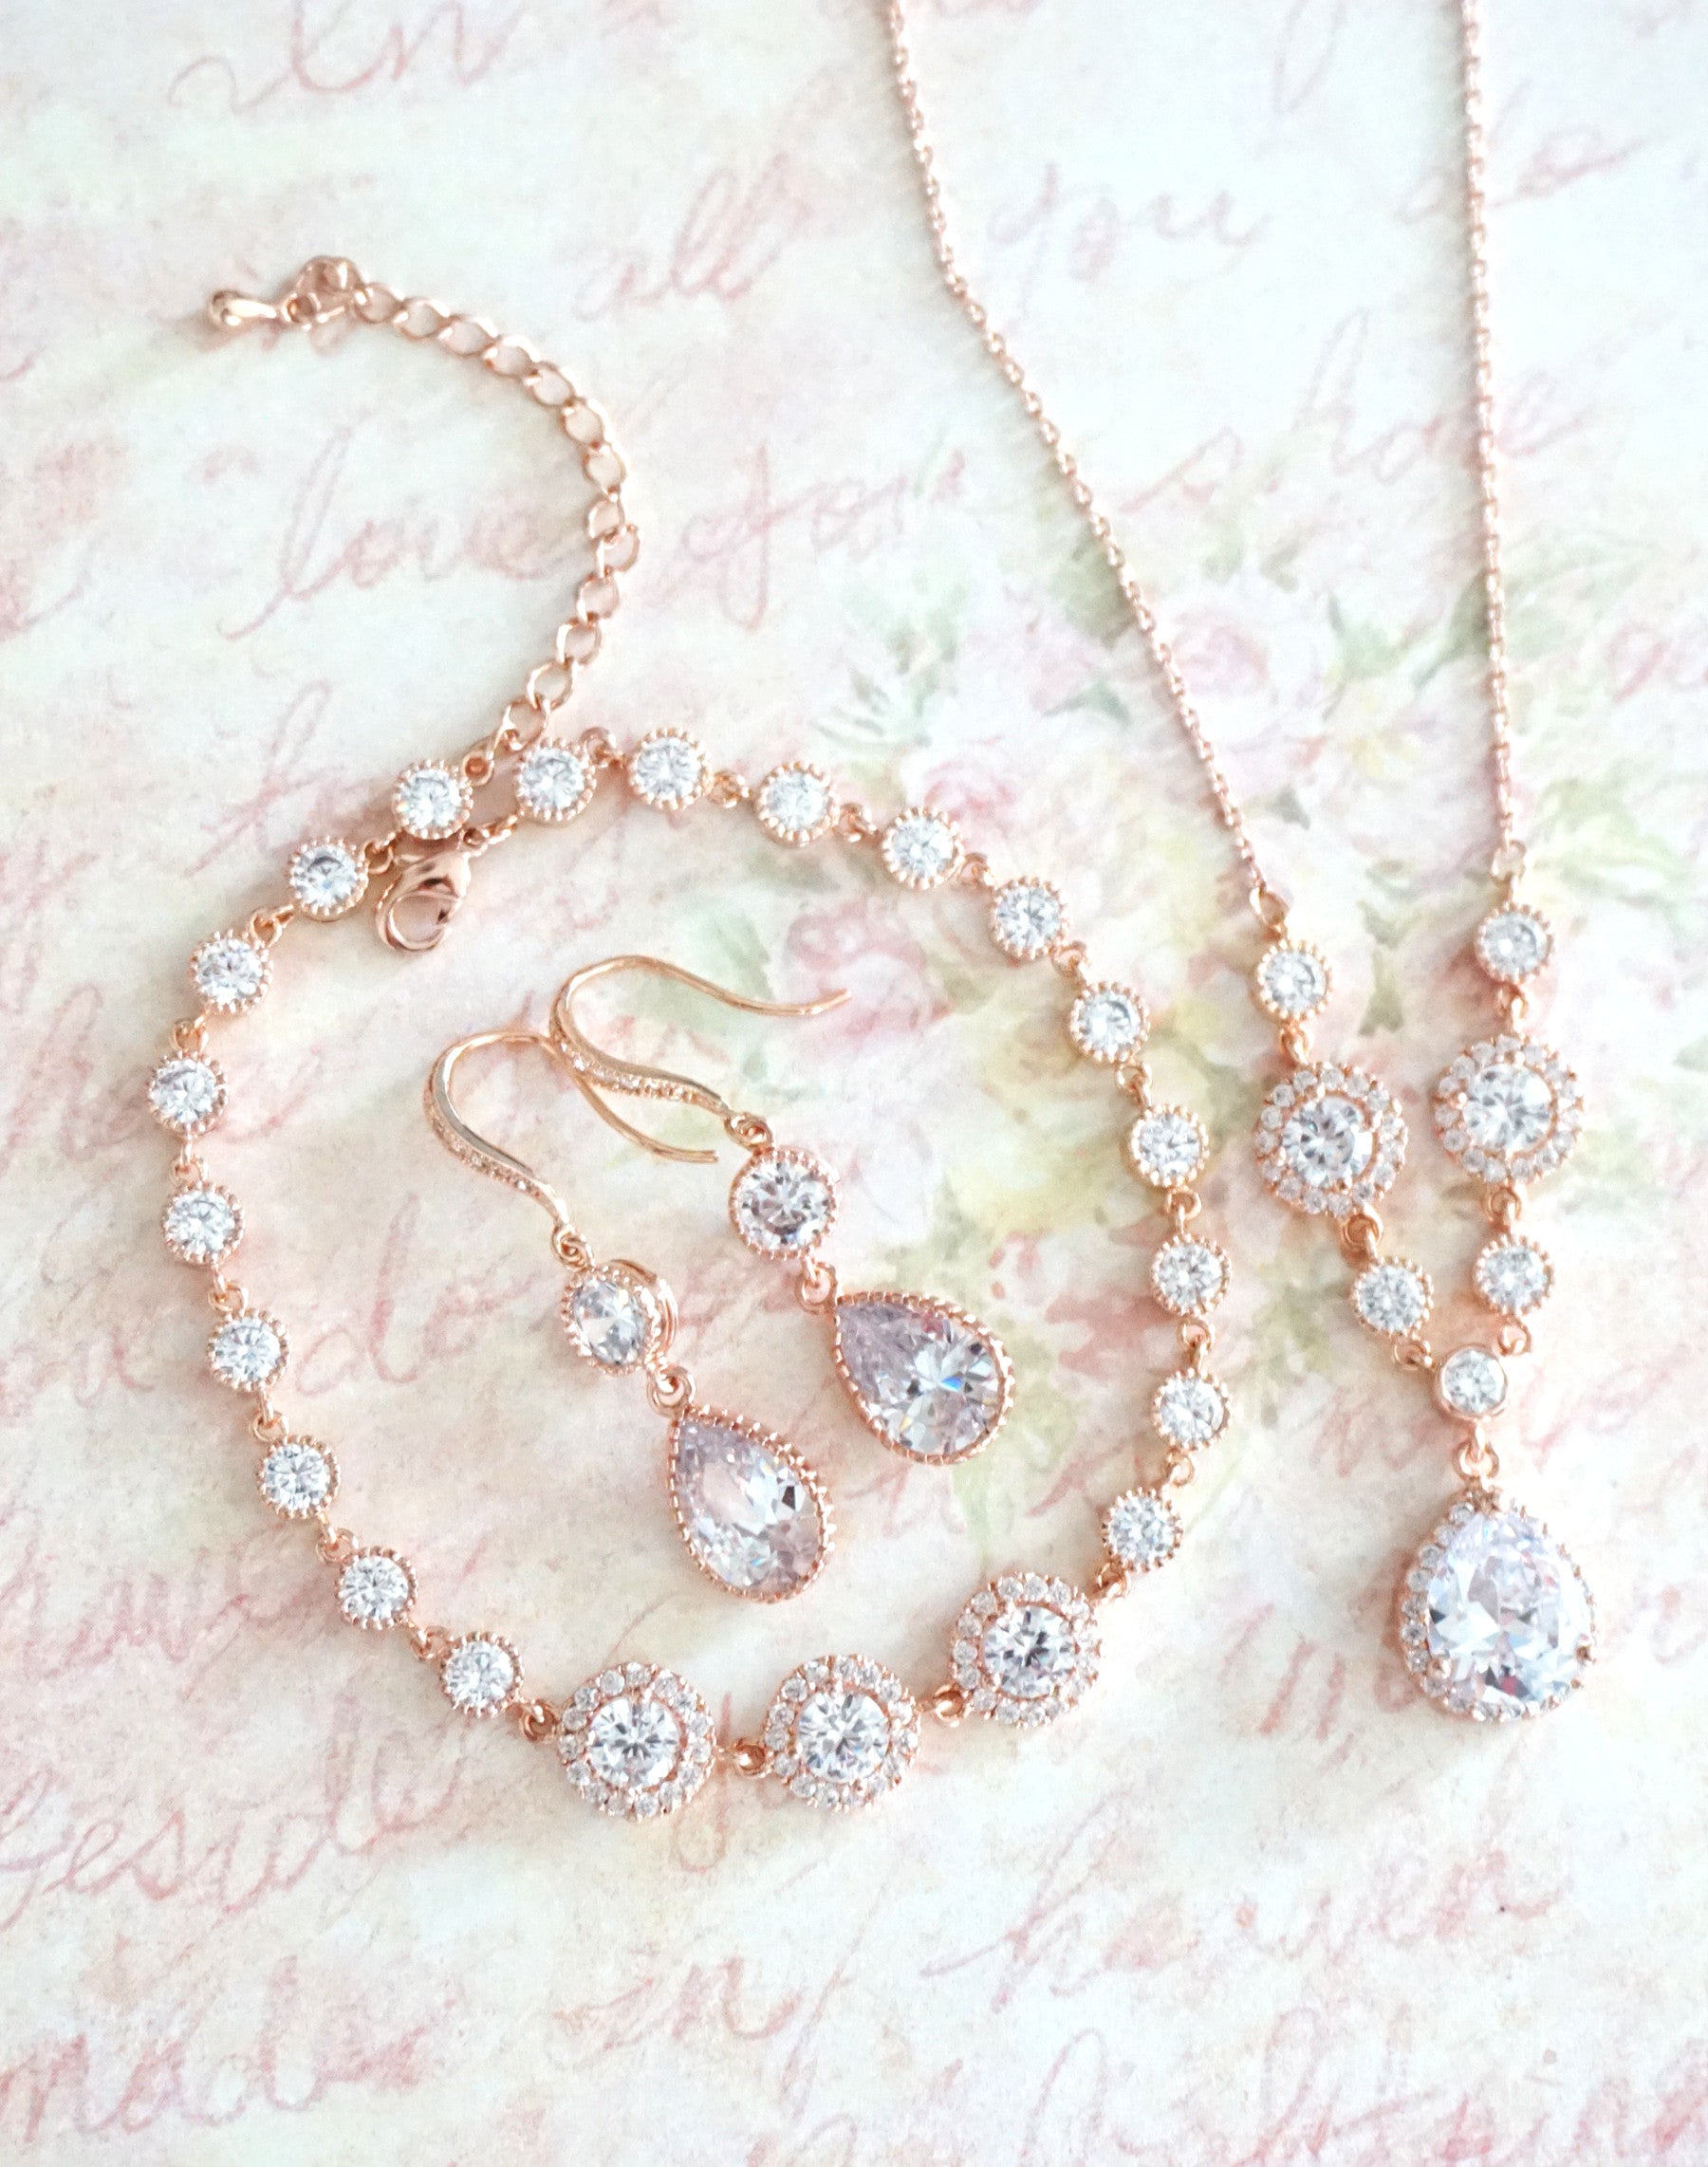 Rose Gold Halo Jewelry | Wedding Bridal Brides Bridesmaids Necklace, Earrings and Bracelet